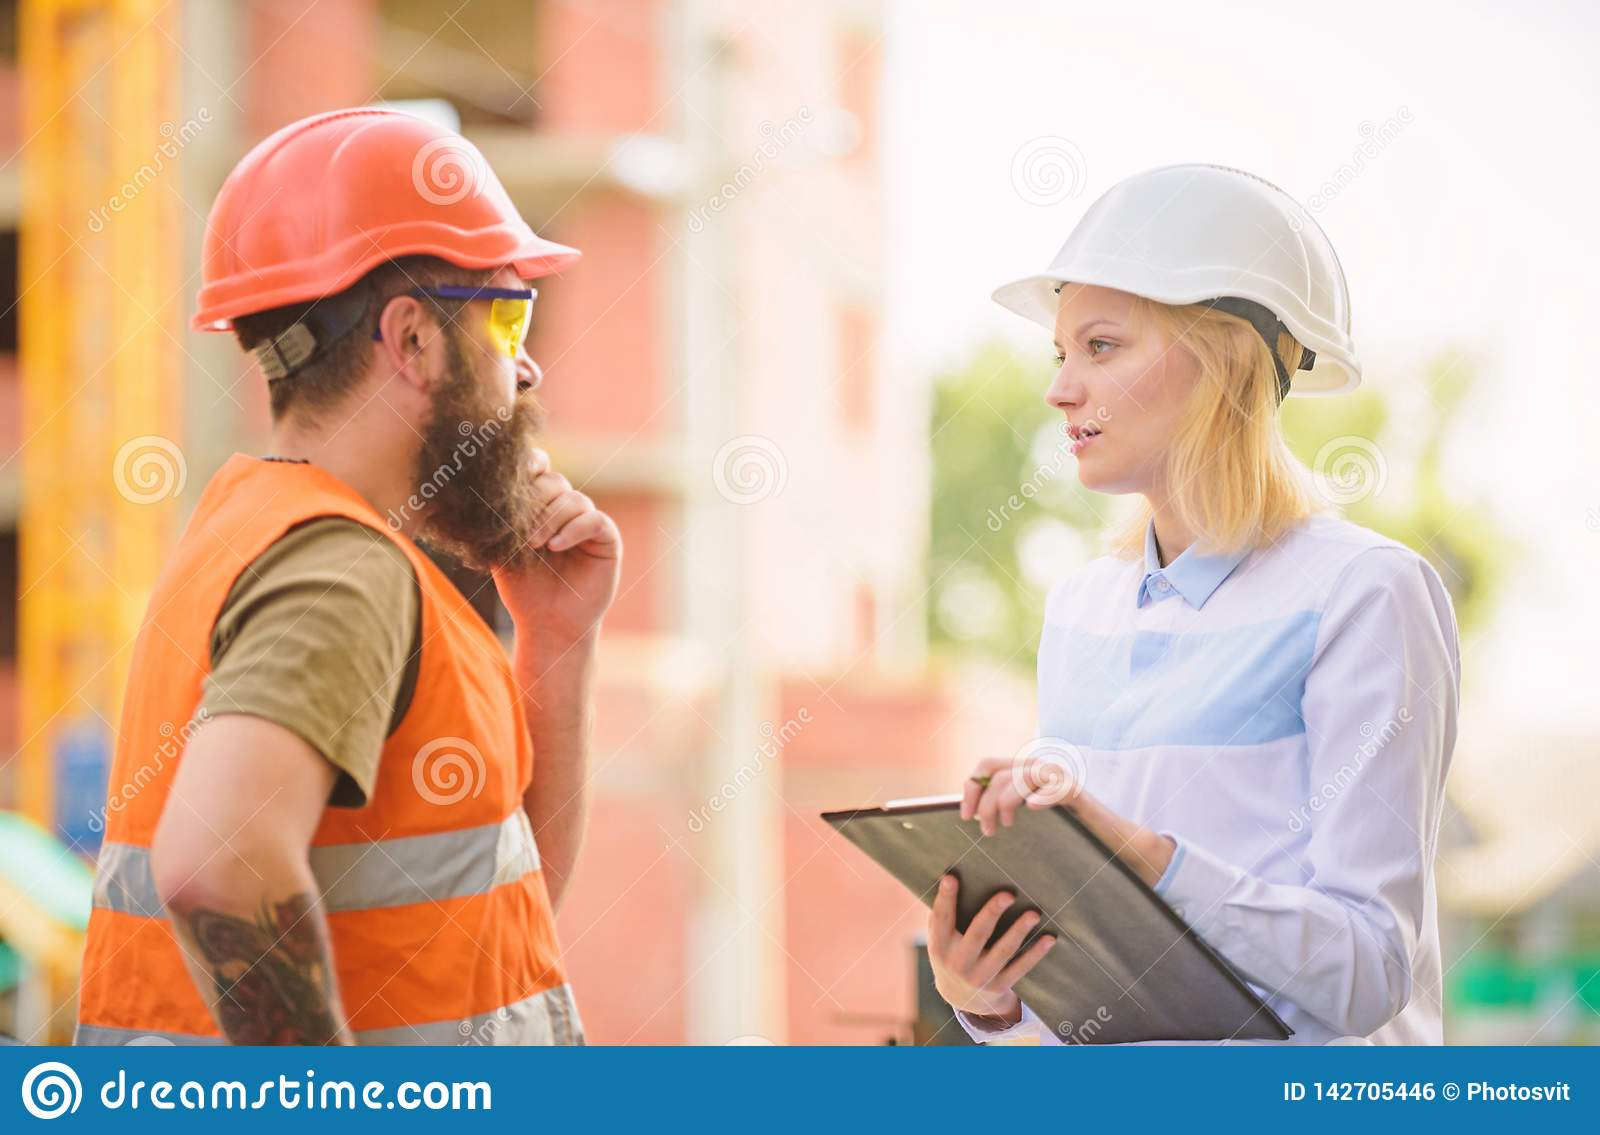 Discuss progress project. Construction project inspecting. Safety inspector concept. Woman inspector and bearded brutal